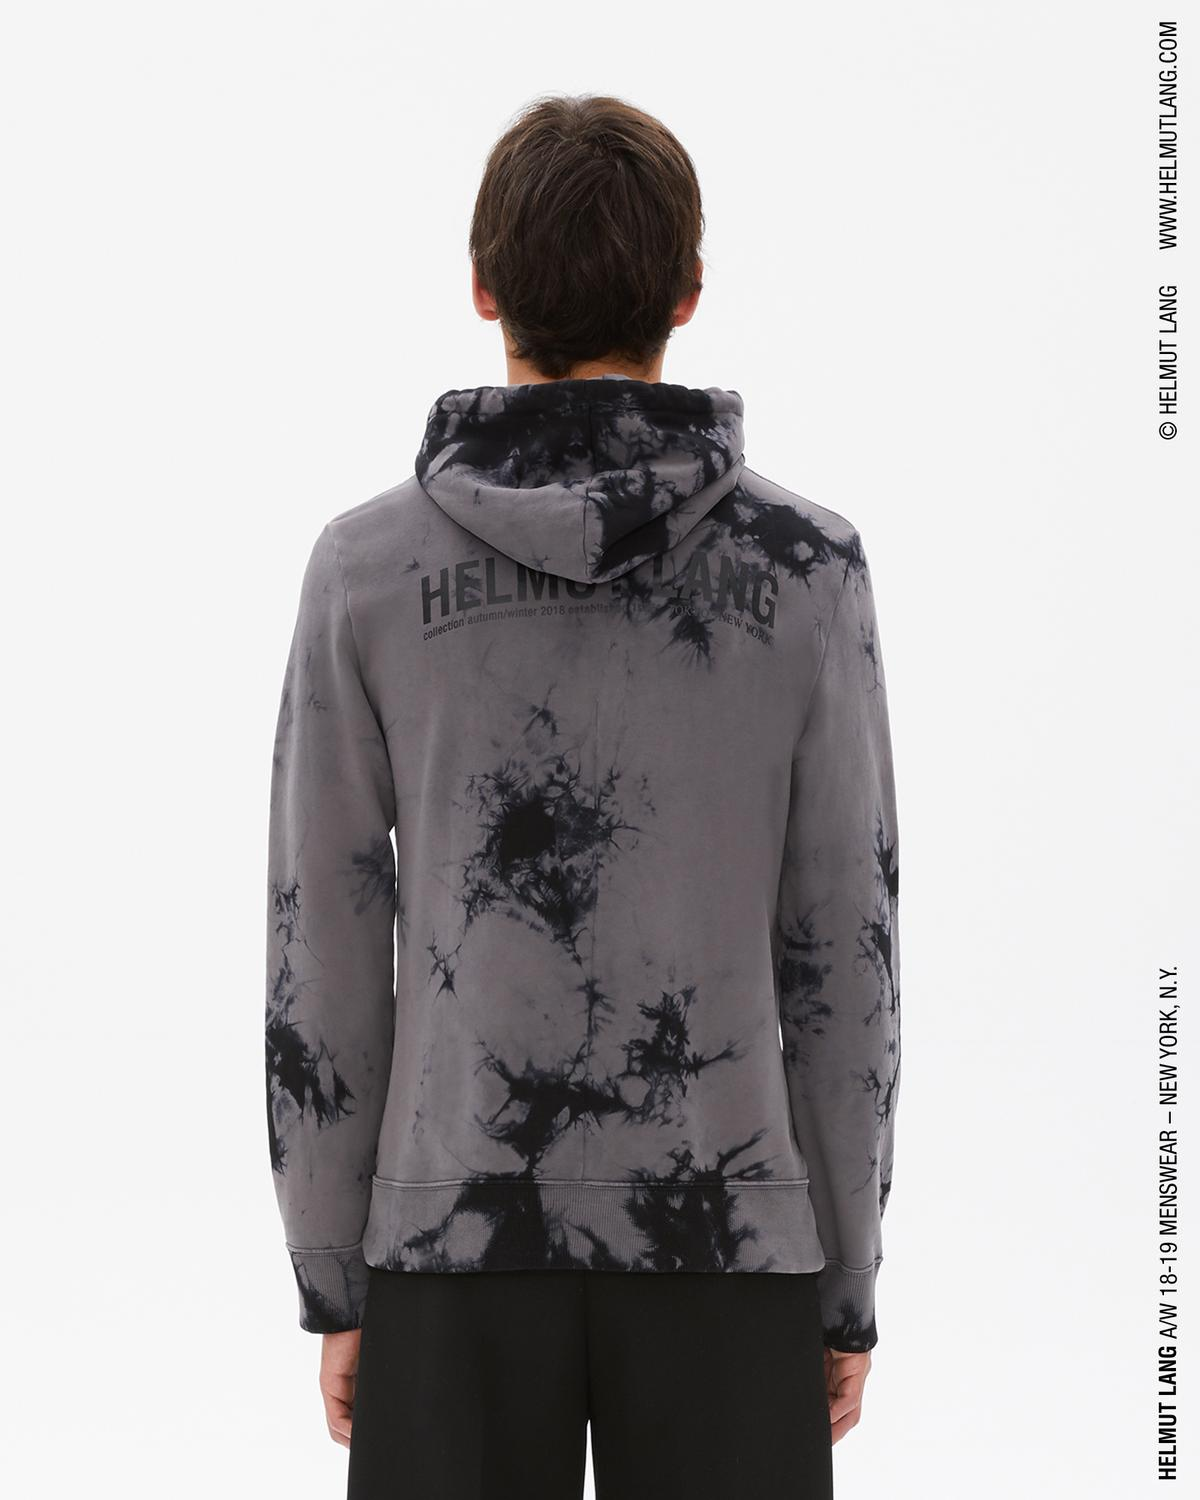 GREY/BLACK TIE-DYED LOGO DART BACK HOODIE